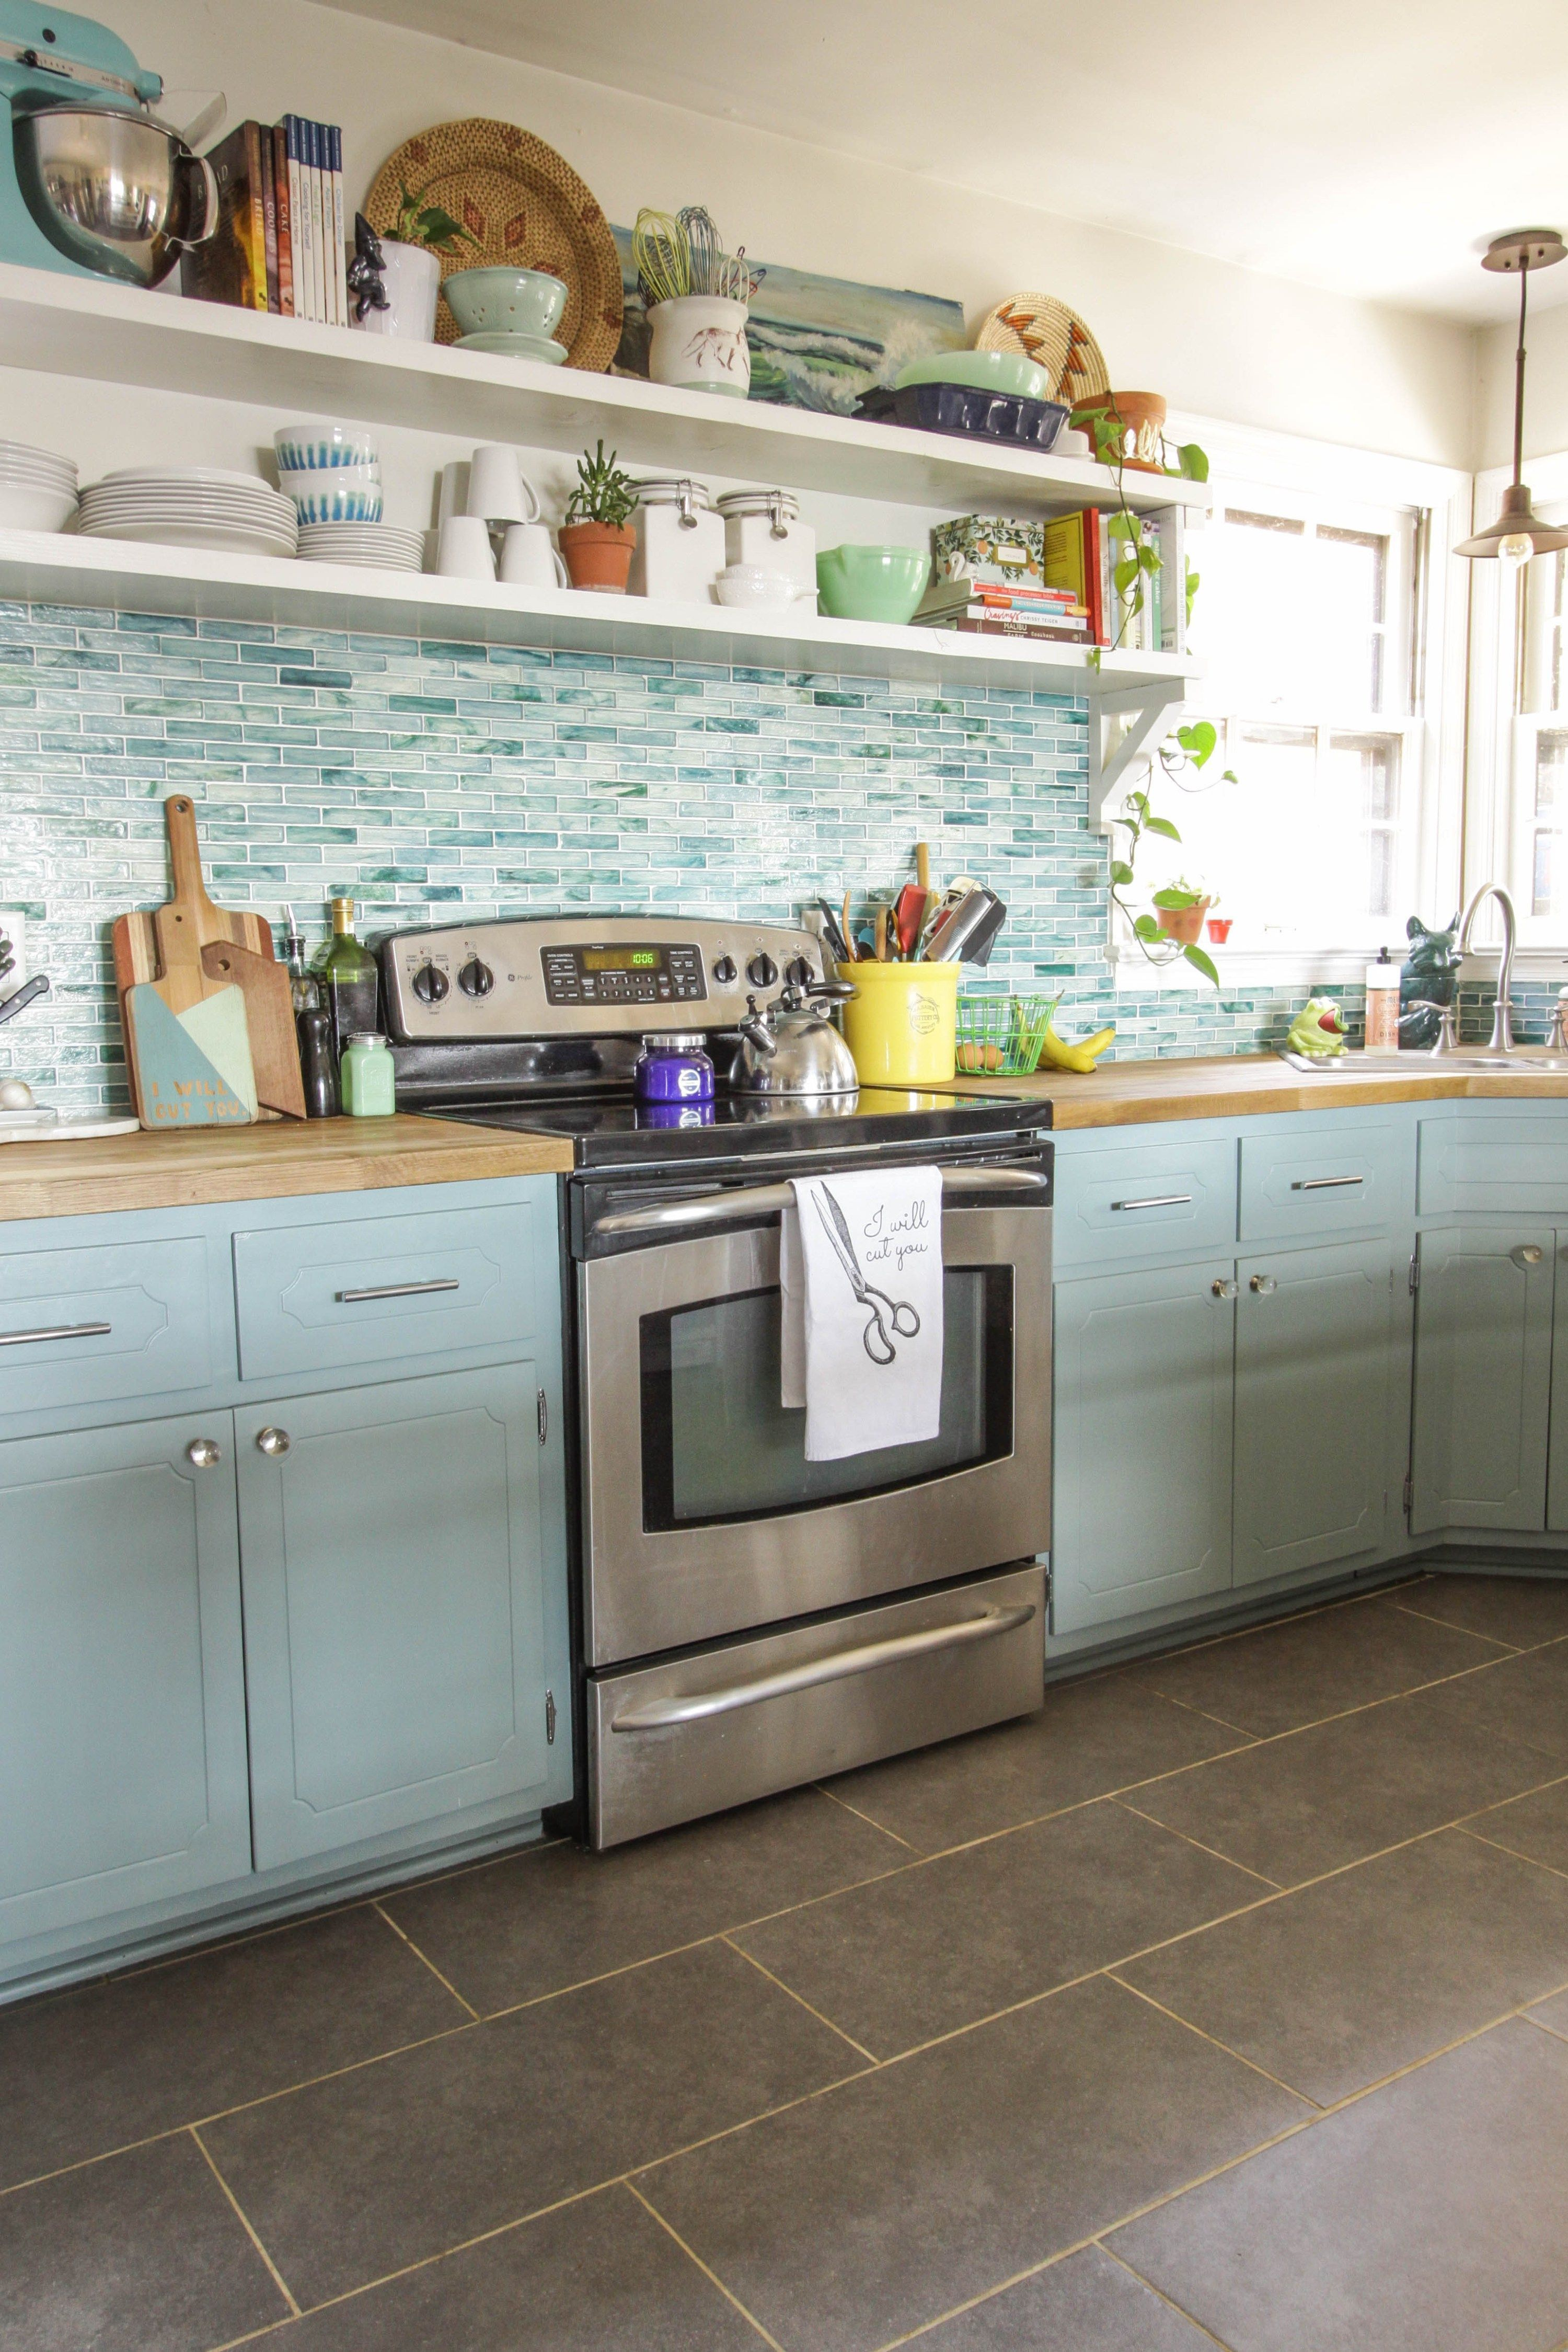 Find Other Ideas Kitchen Countertops Remodeling On A Budget Small Kitchen Remodeling Layout Ideas Kitchen Remodel Small Budget Kitchen Remodel Kitchen Remodel